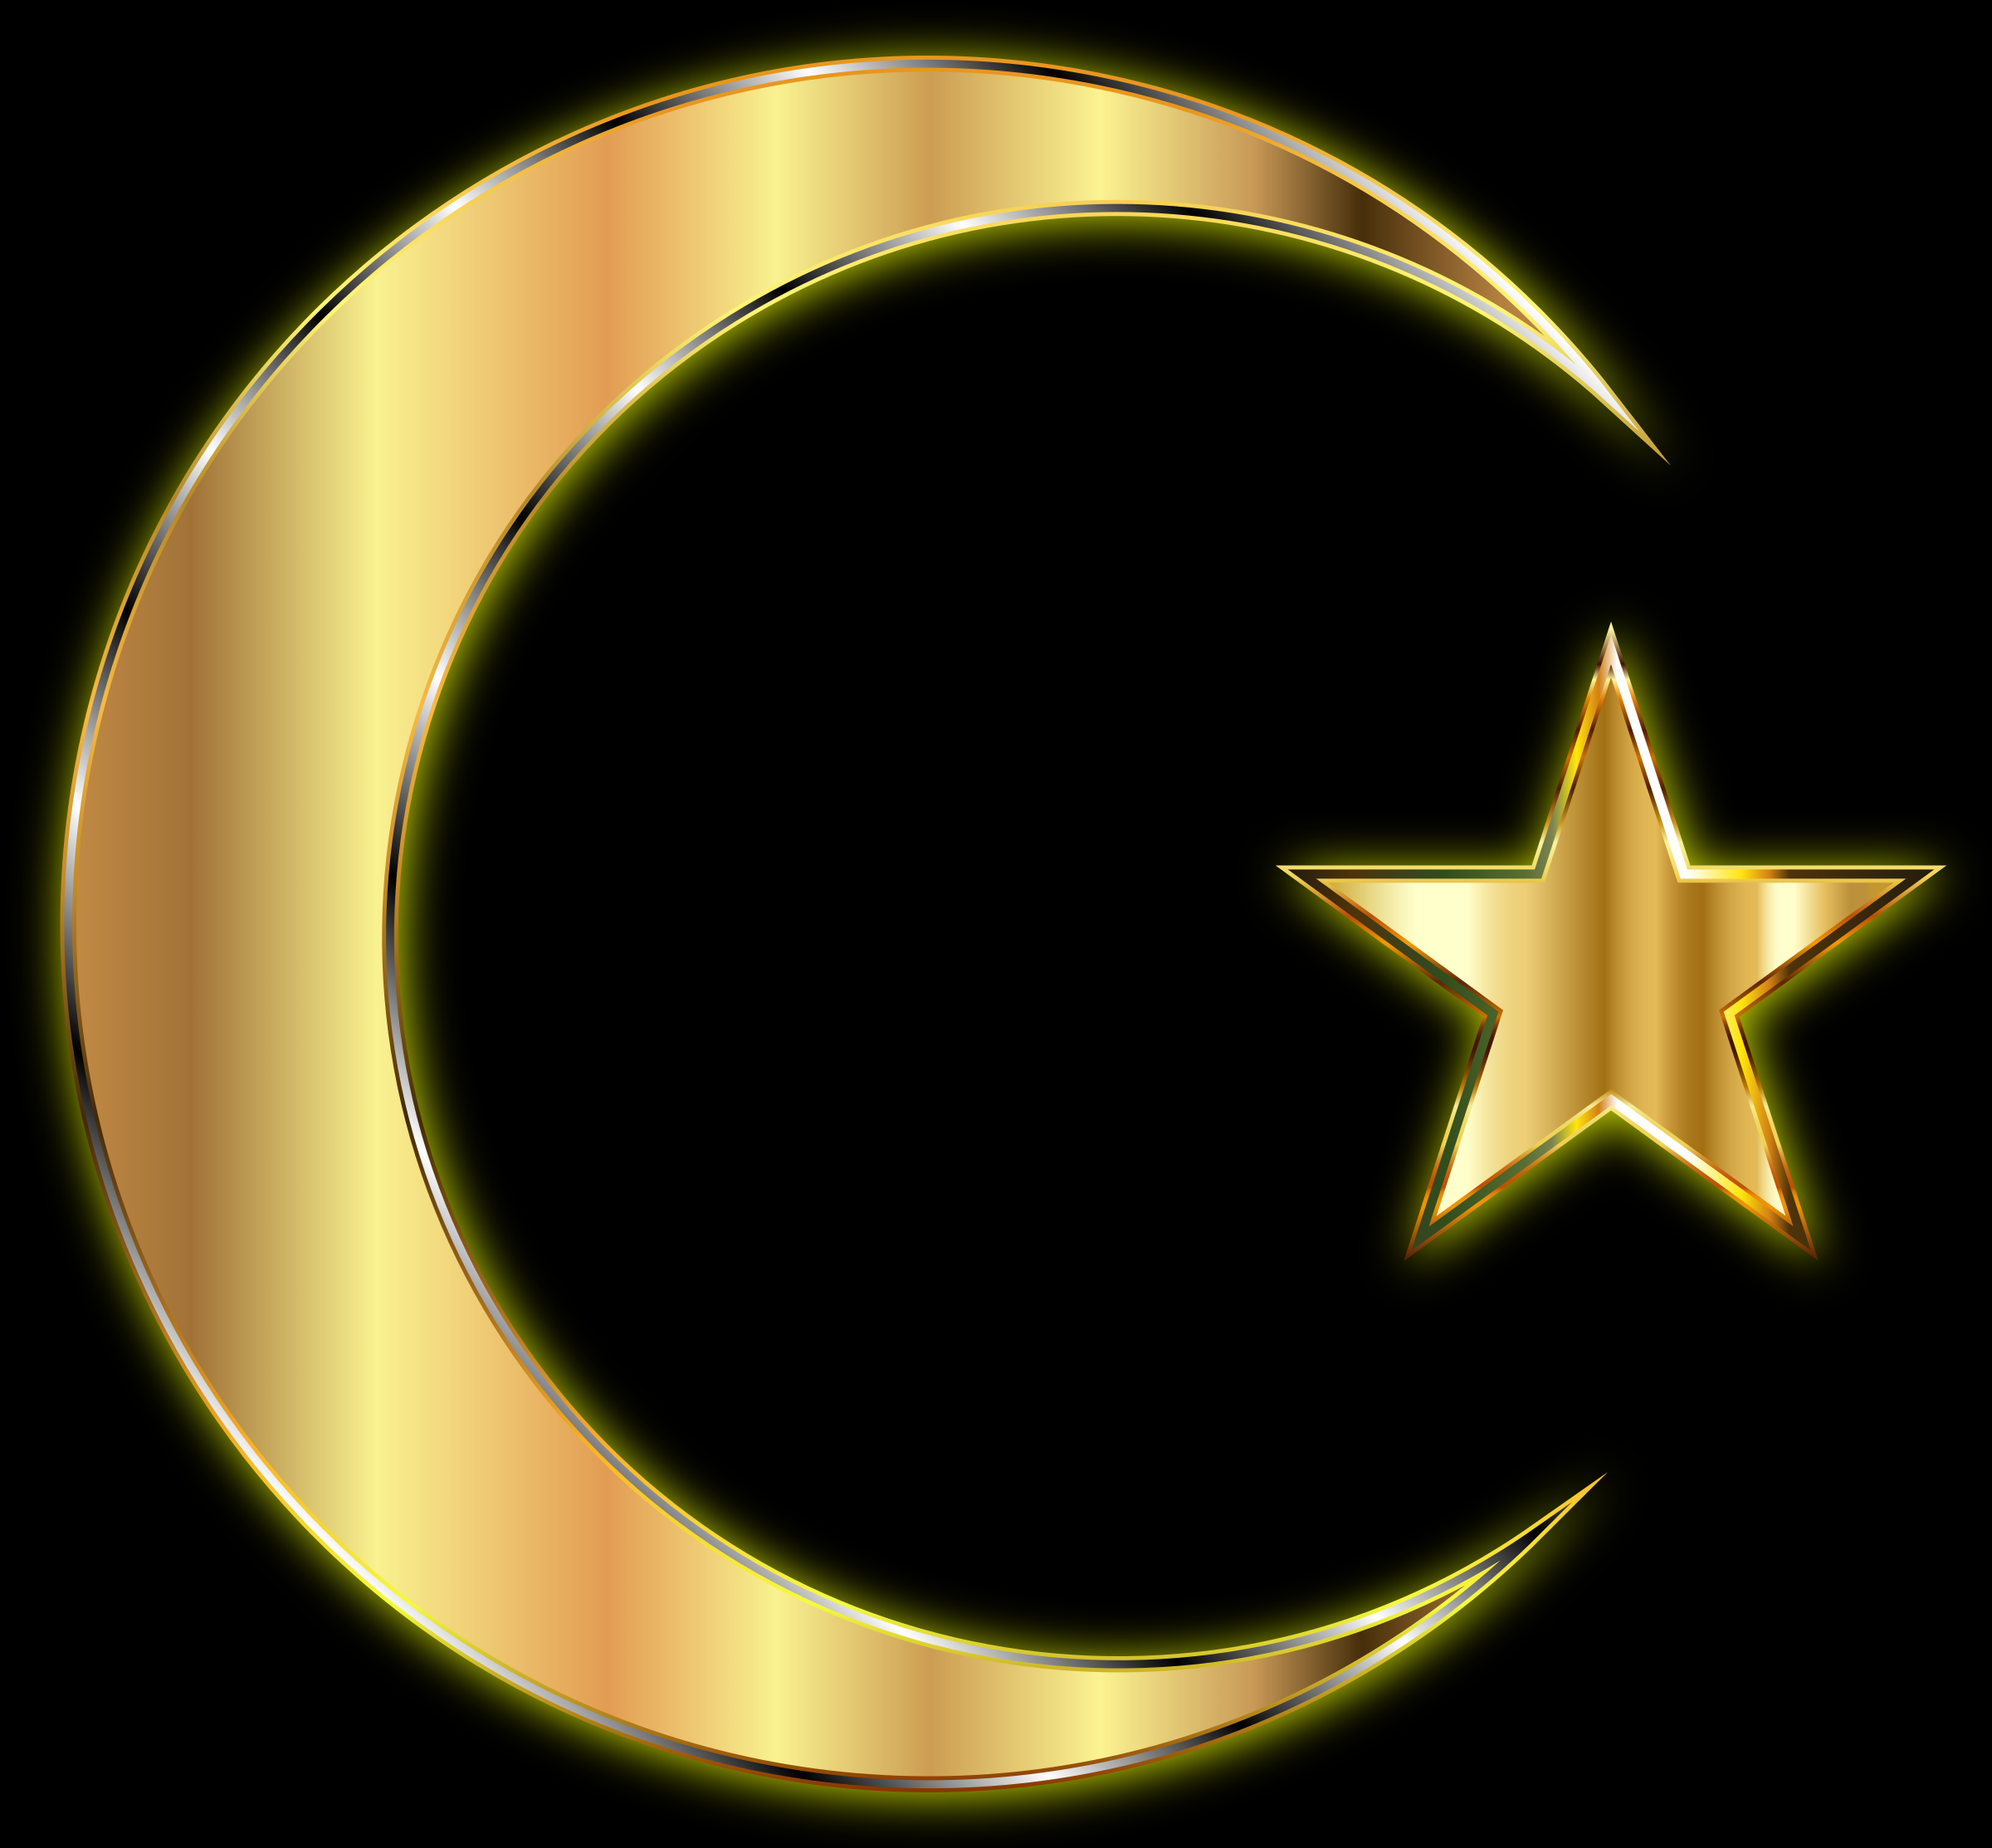 Clipart - Golden Crescent Moon And Star Enhanced